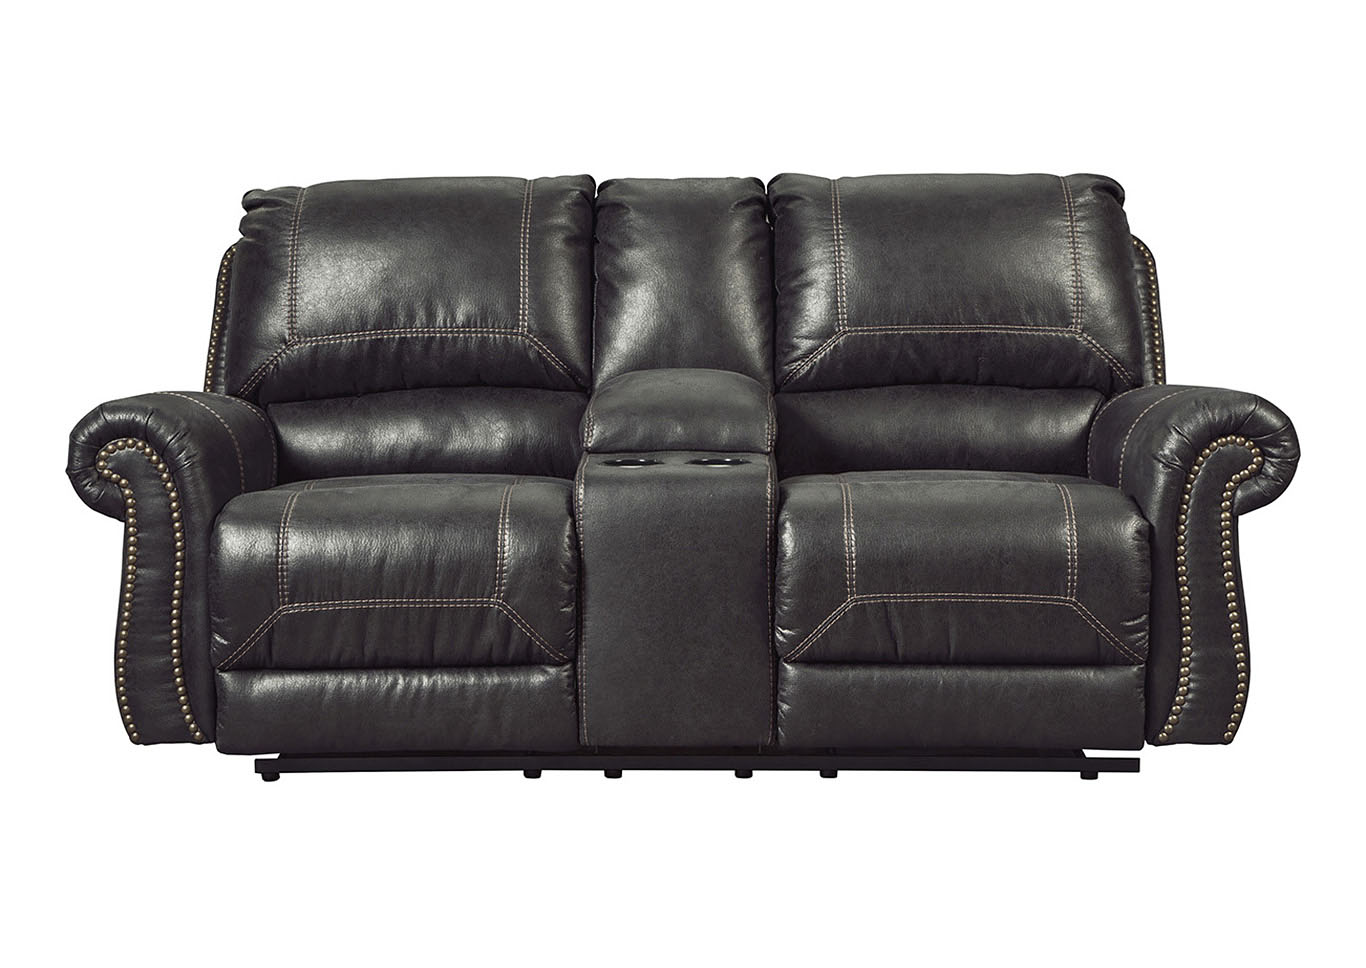 Alabama Furniture Market Milhaven Black Double Power